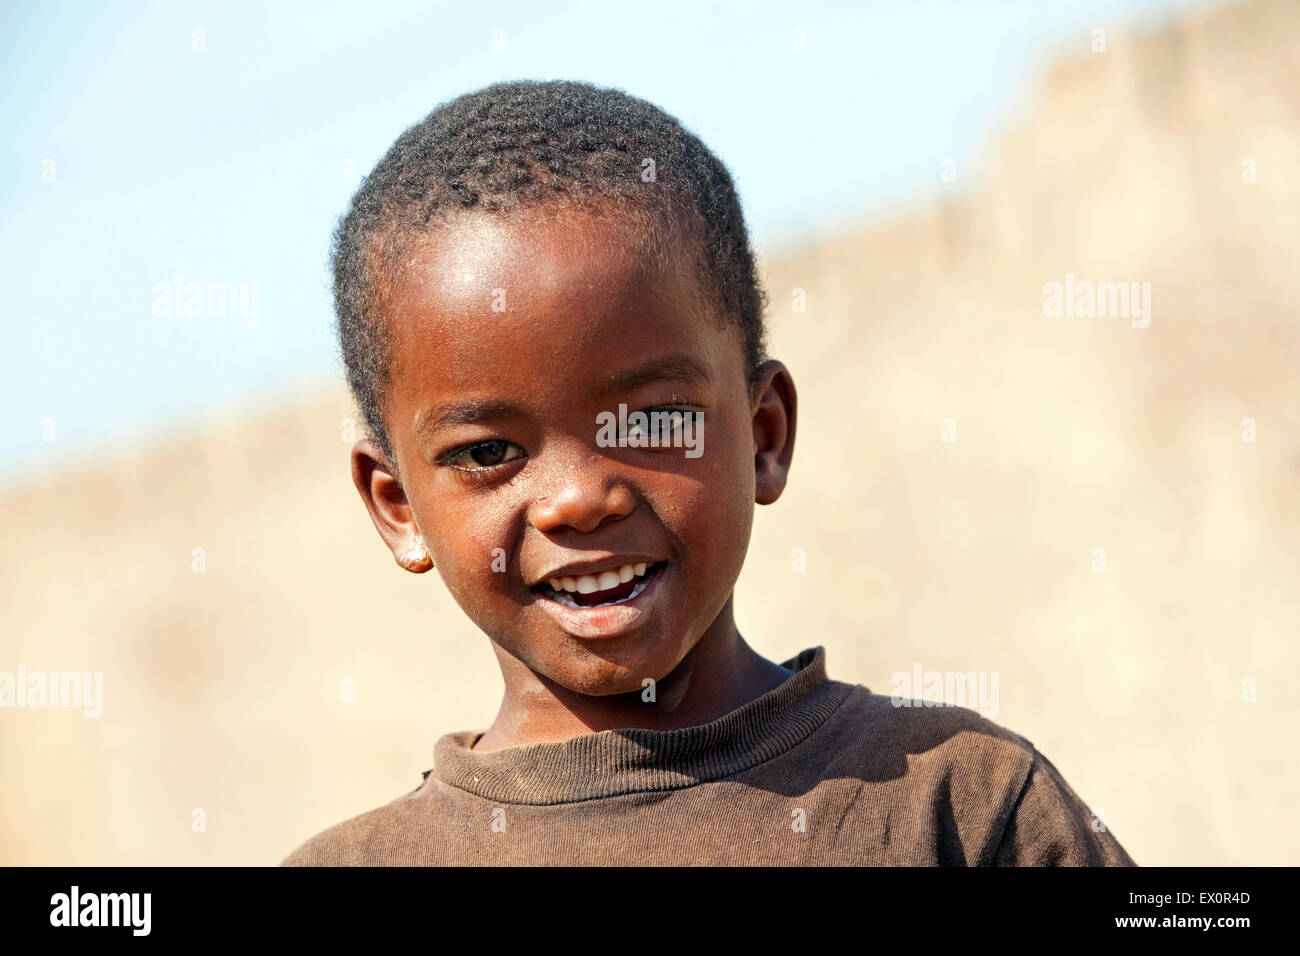 Close up portrait of Creole boy on the island of Santiago, Cape Verde / Cabo Verde, Western Africa - Stock Image